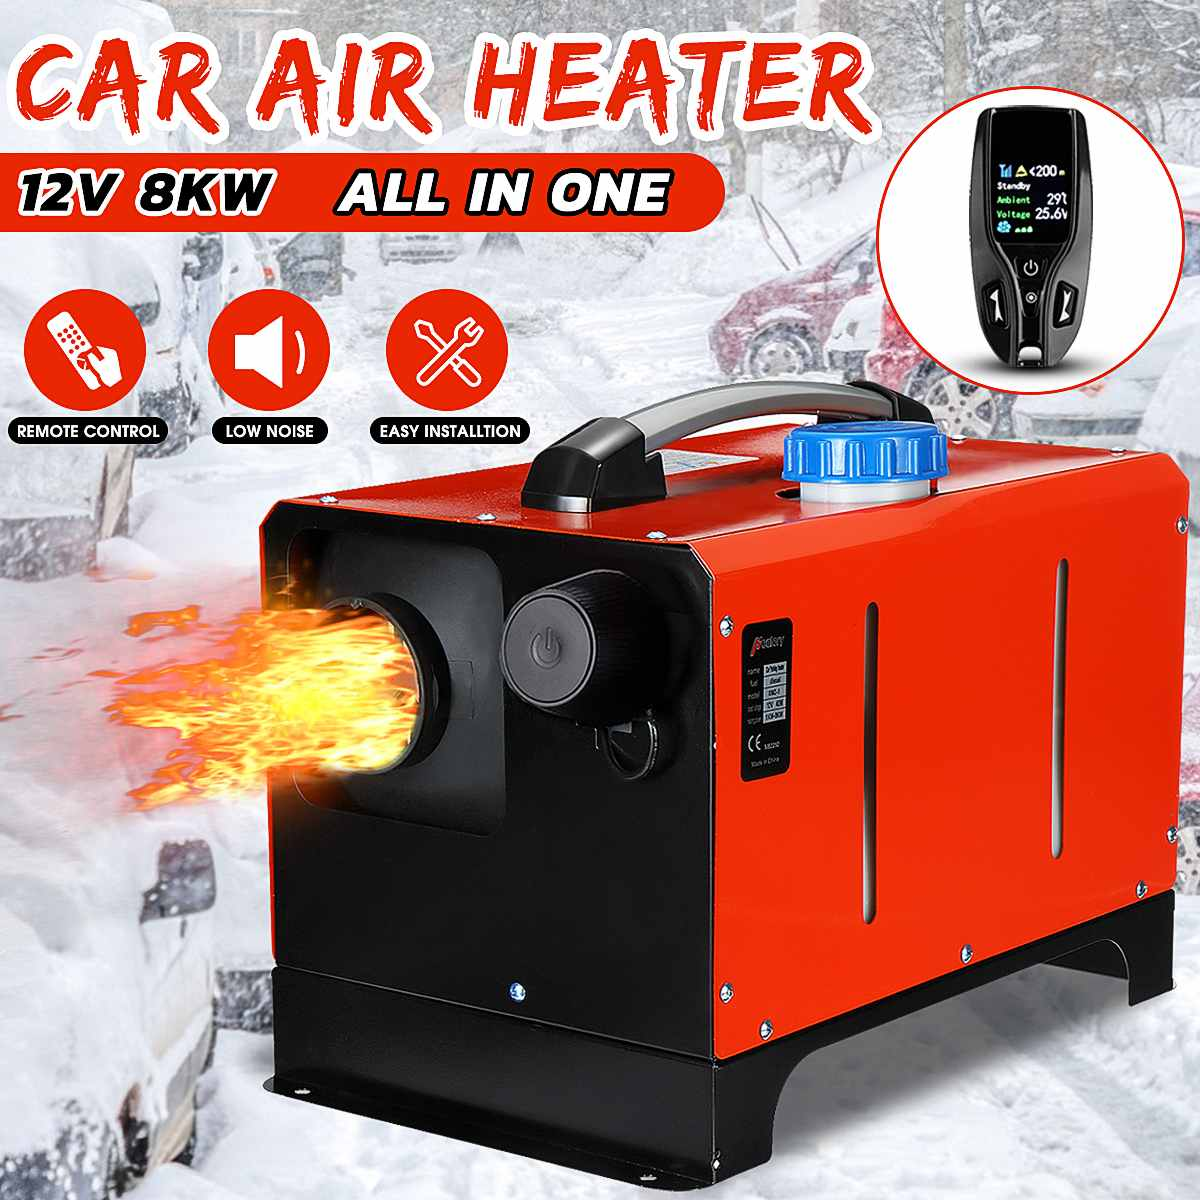 8KW 12V All In One Car Heater Diesels Air Parking Heater 8000W Single Hole+LCD Remote Control Warmer For Car Truck RV Bus Boat